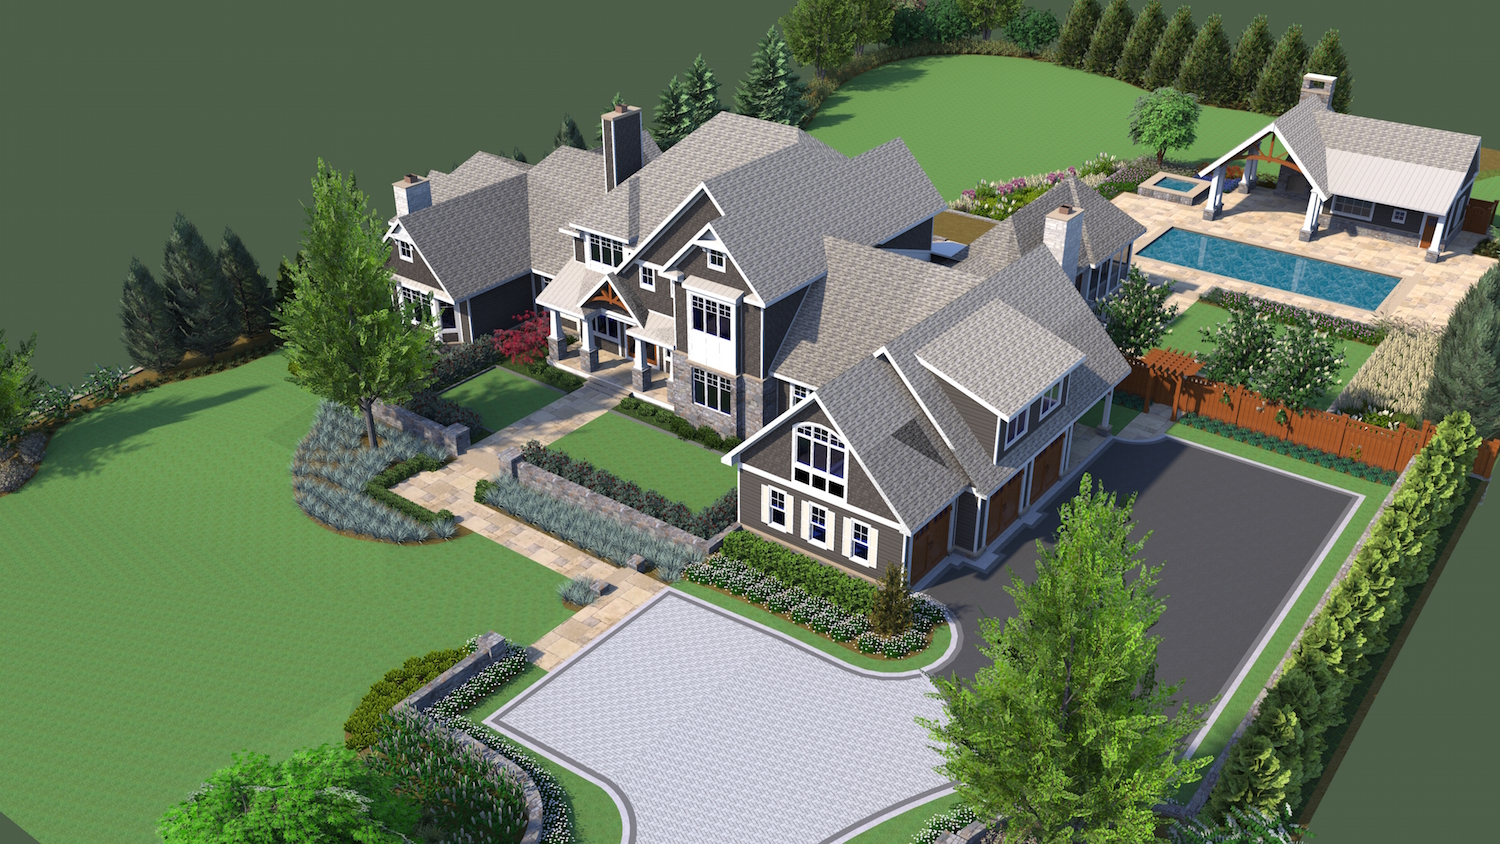 Landscape Design And Custom Home Rendering